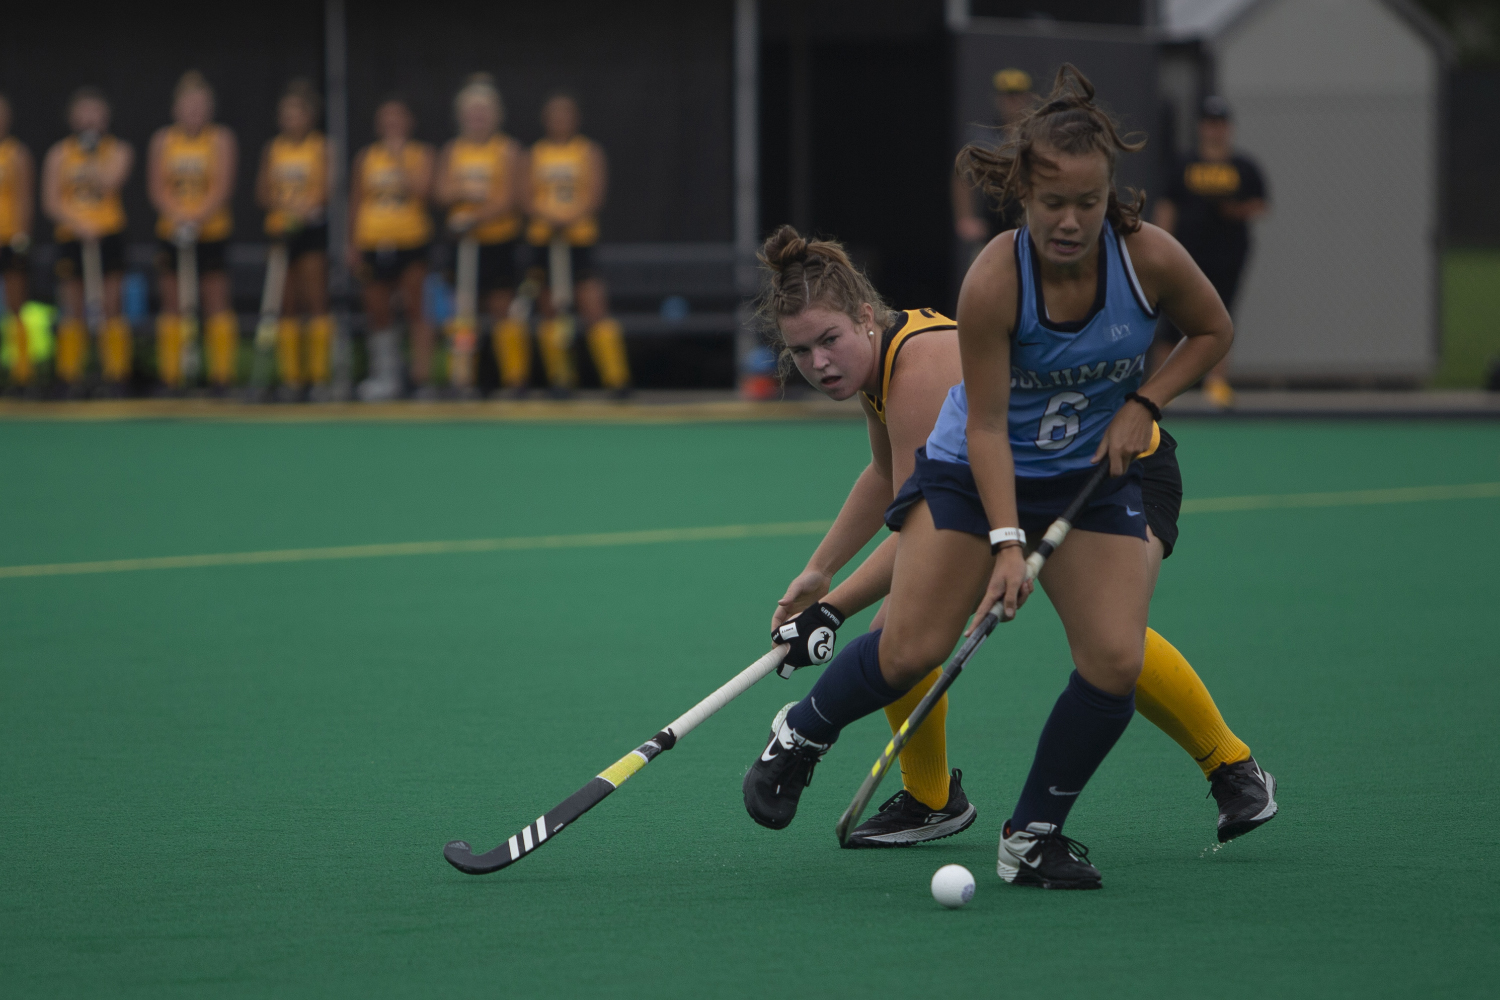 Iowa+midfielder+Meghan+Conroy+tries+to+steal+the+ball+during+a+field+hockey+game+between+Iowa+and+Columbia+at+Grant+Field+on+Sunday%2C+September+8%2C+2019.+The+Hawkeyes+defeated+the+Lions%2C+3-1.